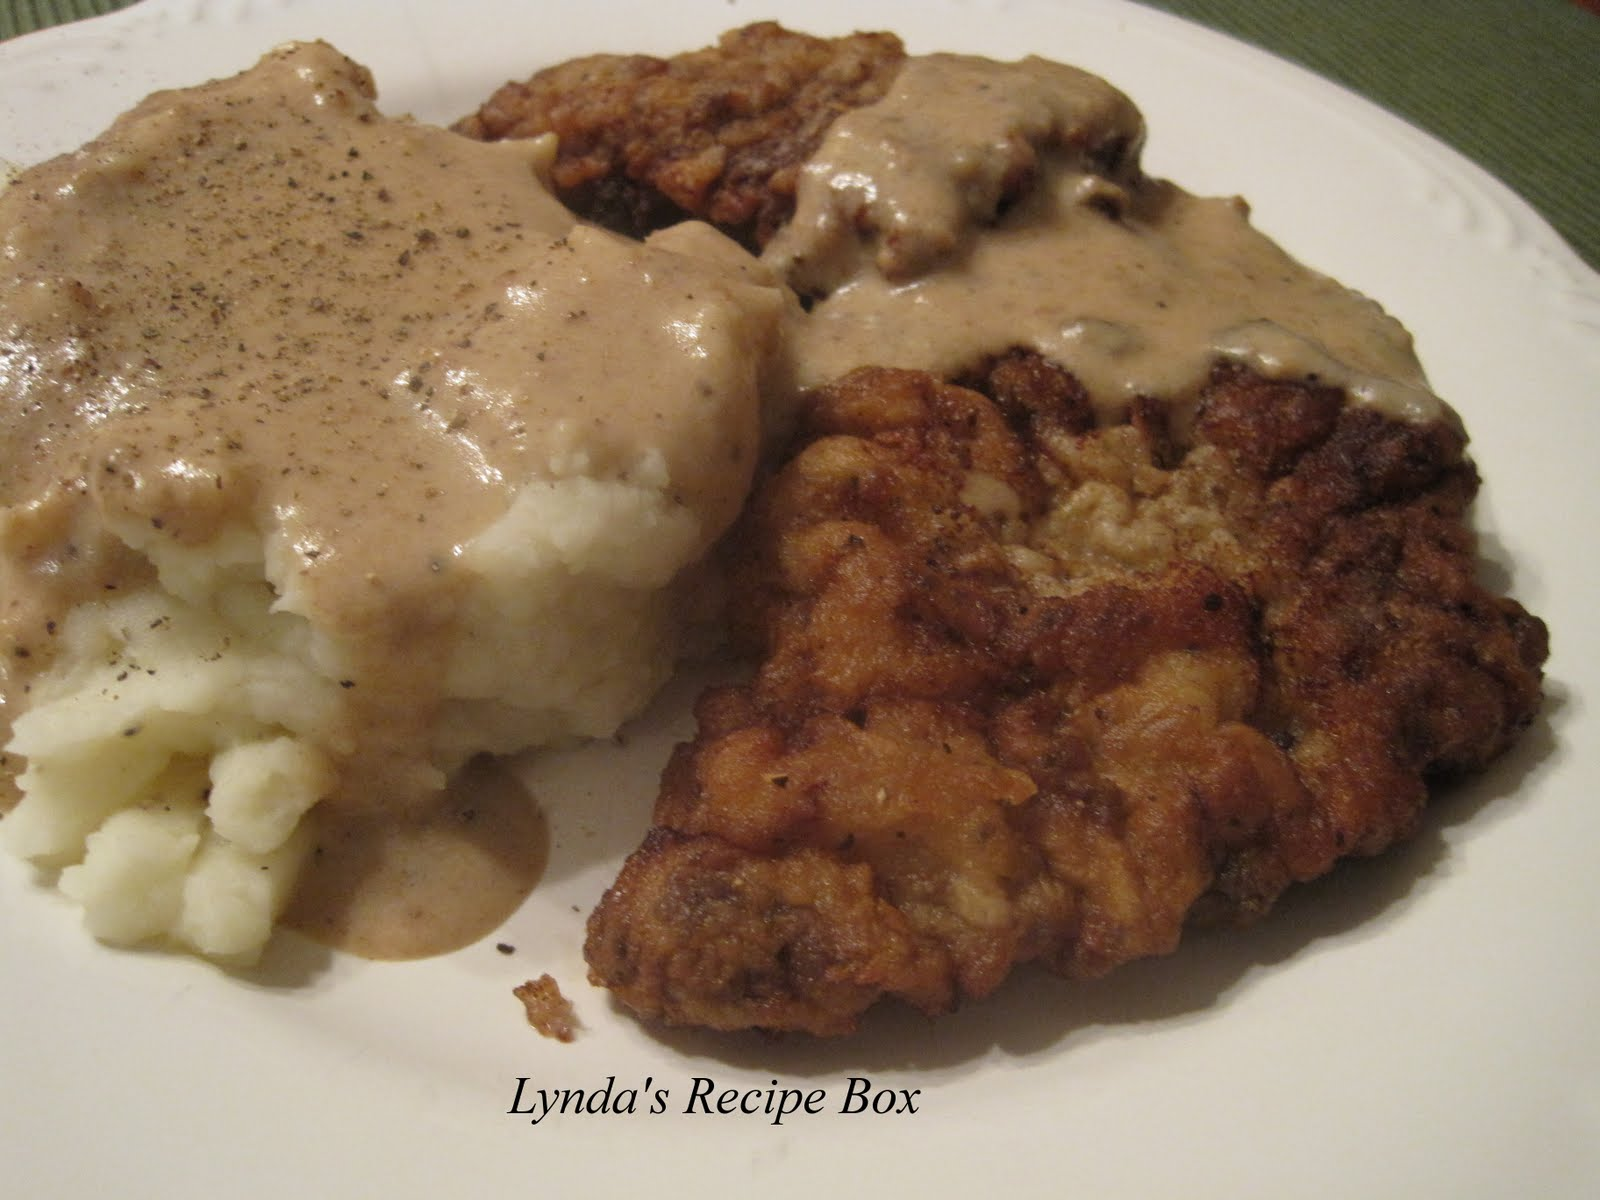 Lynda's Recipe Box: Chicken Fried Steak with Creamy Gravy